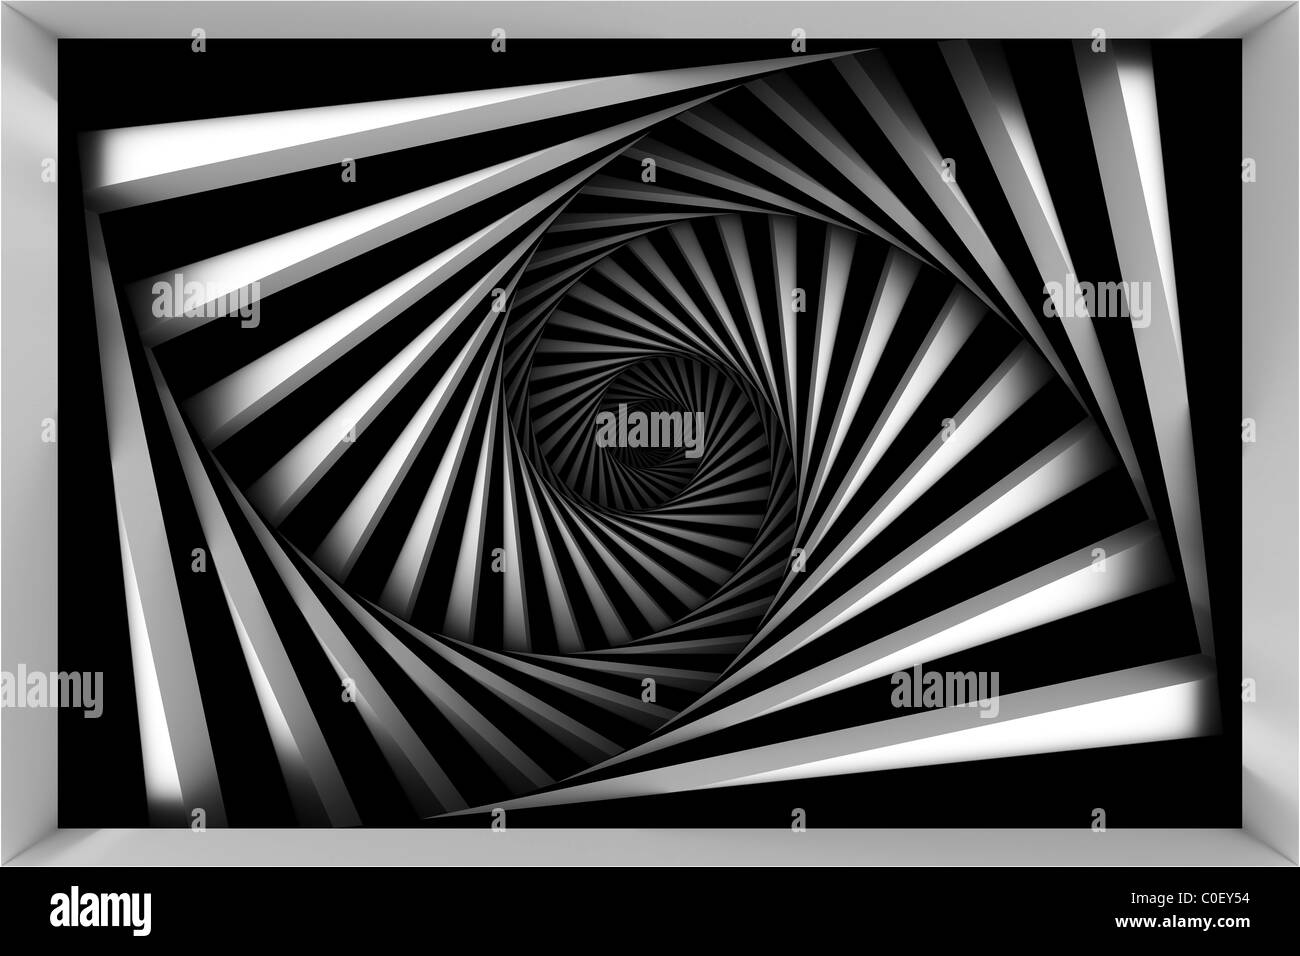 Black and white spiral - Stock Image